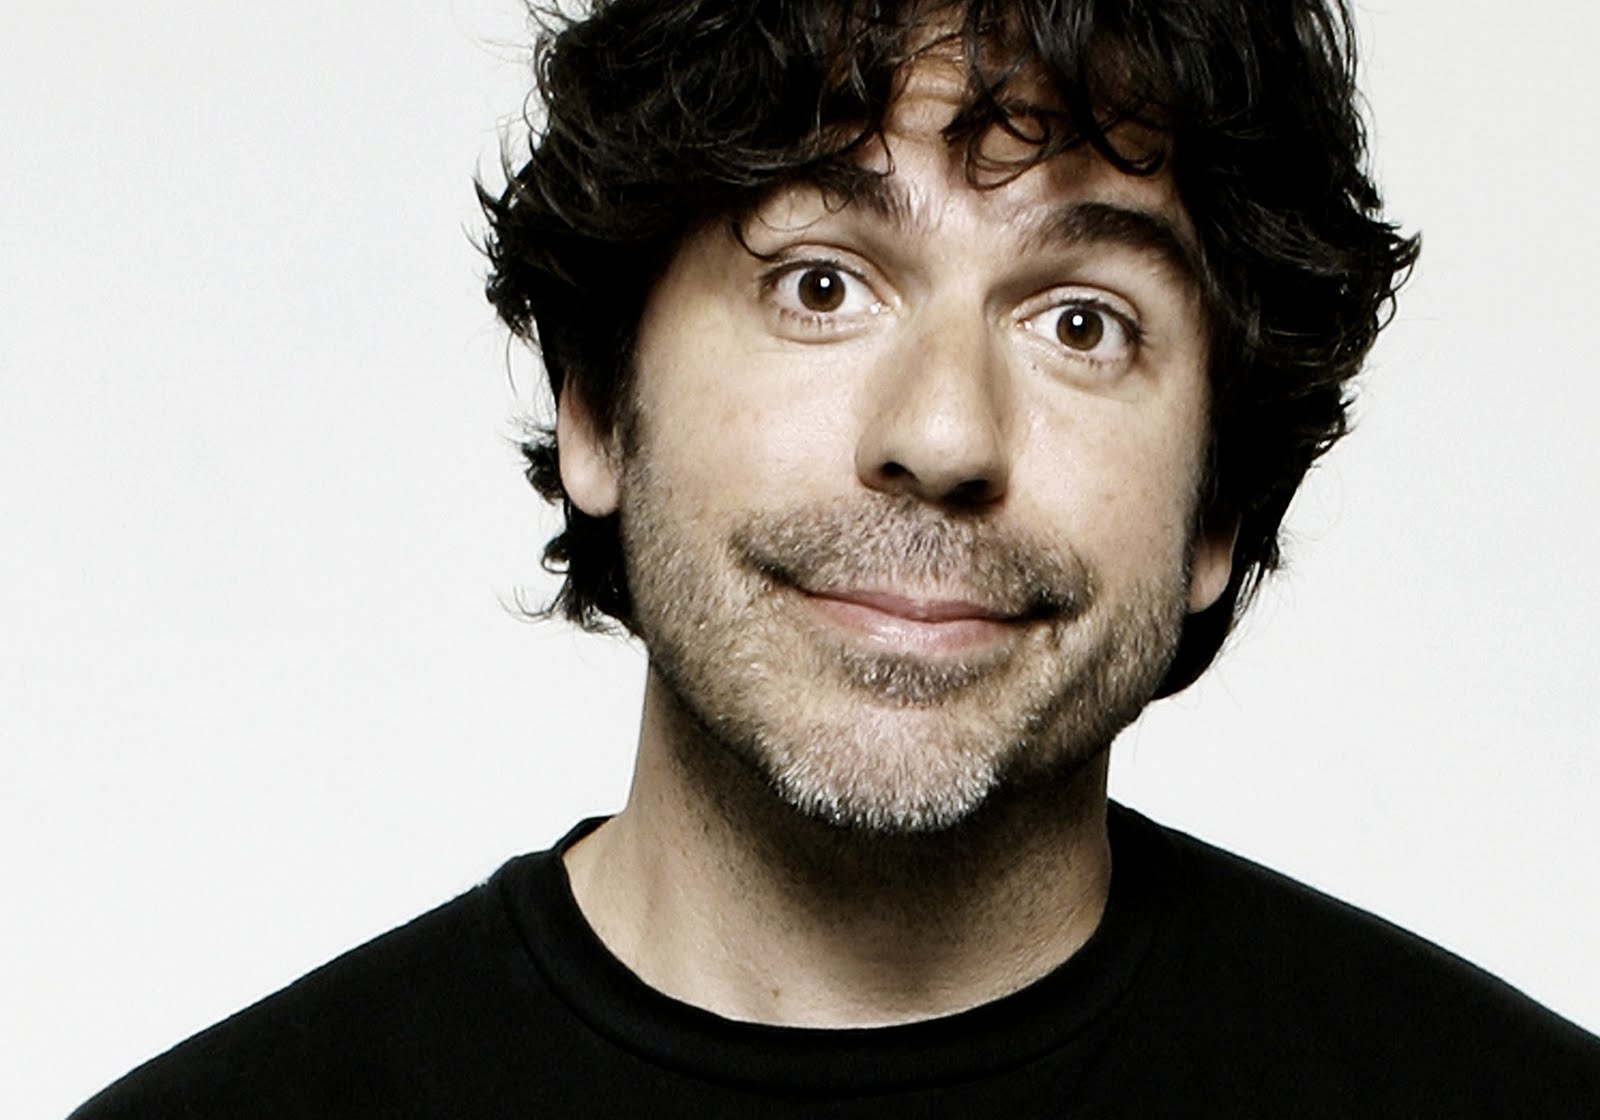 greg giraldo deadgreg giraldo roast, greg giraldo dead, greg giraldo net worth, greg giraldo youtube, greg giraldo funeral, greg giraldo civil war, greg giraldo comedian, greg giraldo roast joan rivers, greg giraldo roast david hasselhoff, greg giraldo larry the cable guy, greg giraldo tribute, greg giraldo documentary, greg giraldo special, greg giraldo quotes, greg giraldo jeff foxworthy, greg giraldo imdb, greg giraldo toby keith, greg giraldo bob saget, greg giraldo book, greg giraldo michael phelps